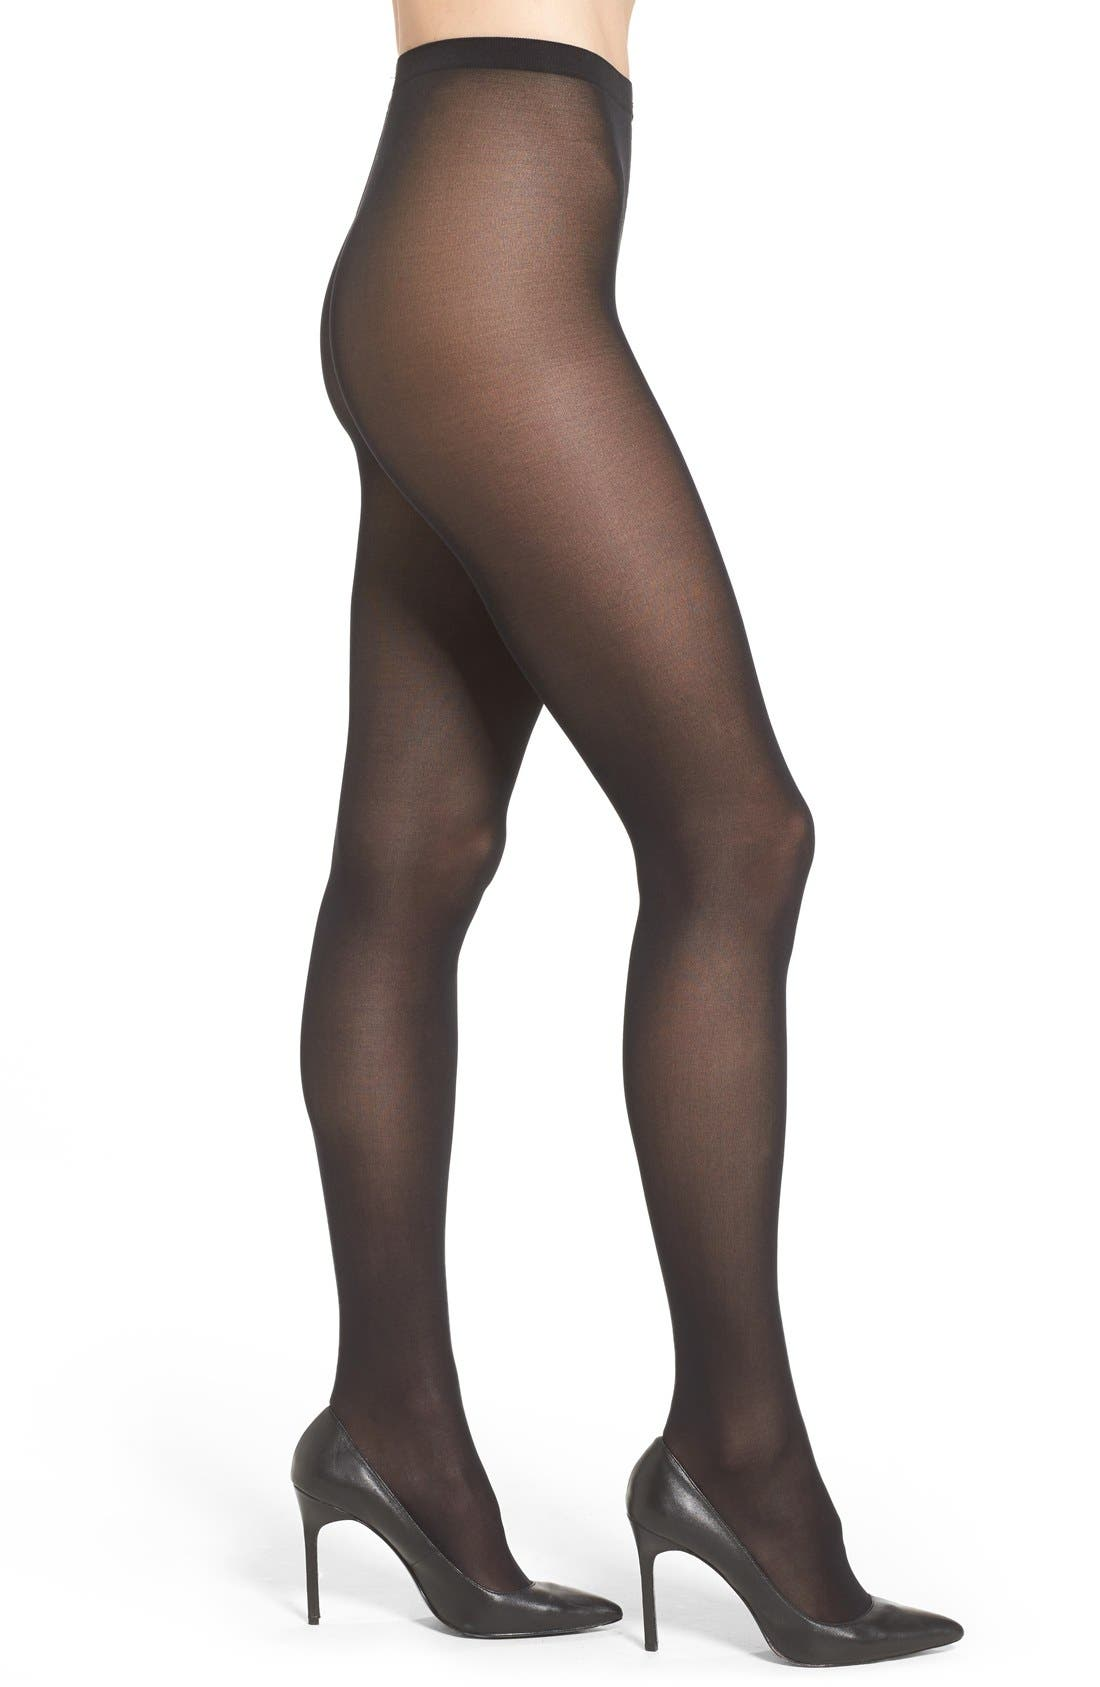 Alternate Image 1 Selected - Wolford 'Velvet de Luxe' Semi-Opaque Tights